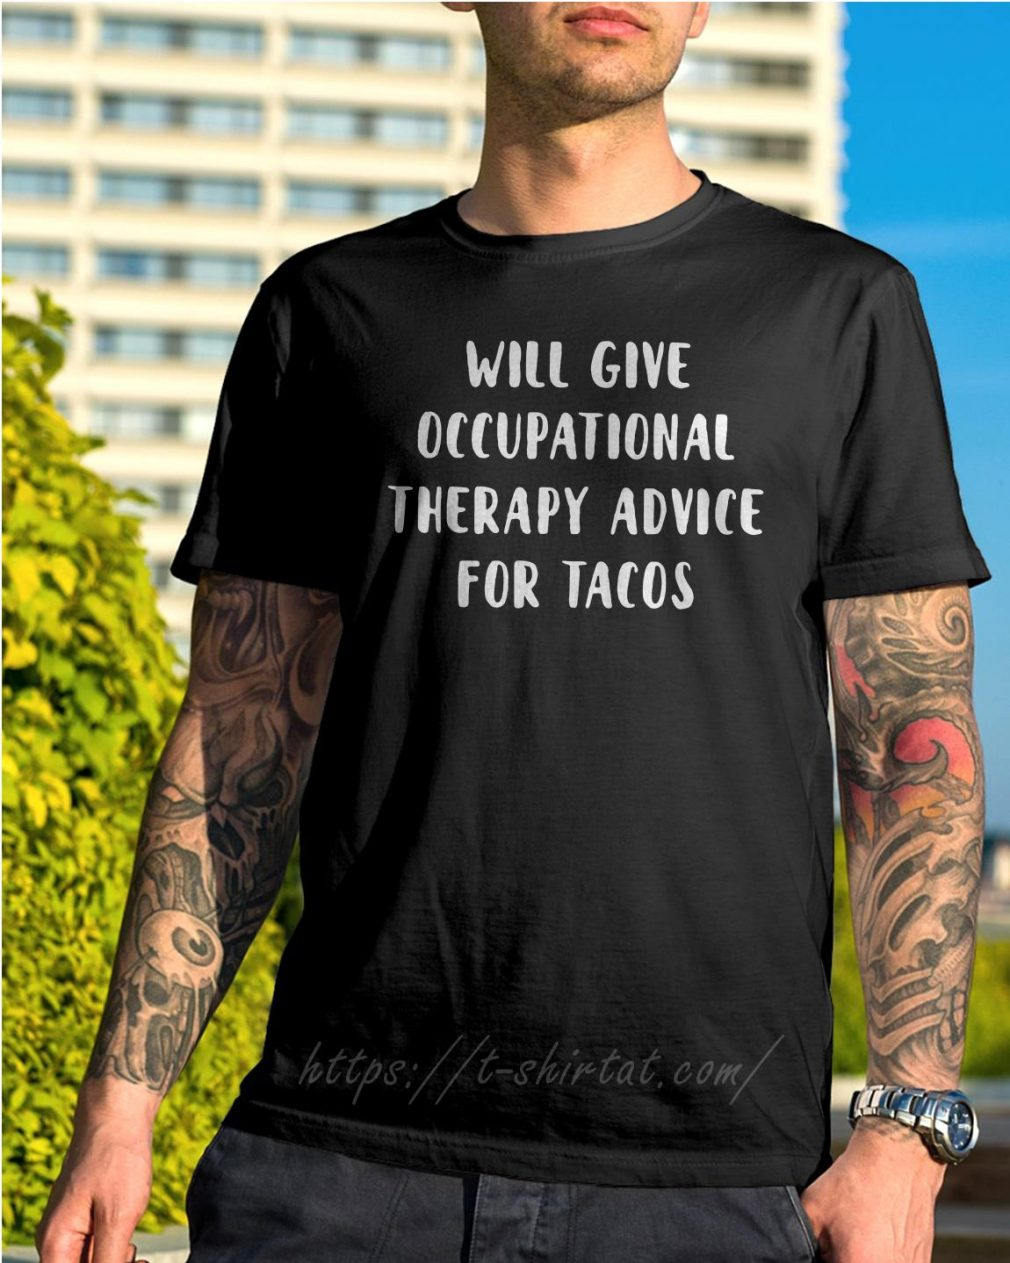 Will give occupational therapy advice for tacos shirt